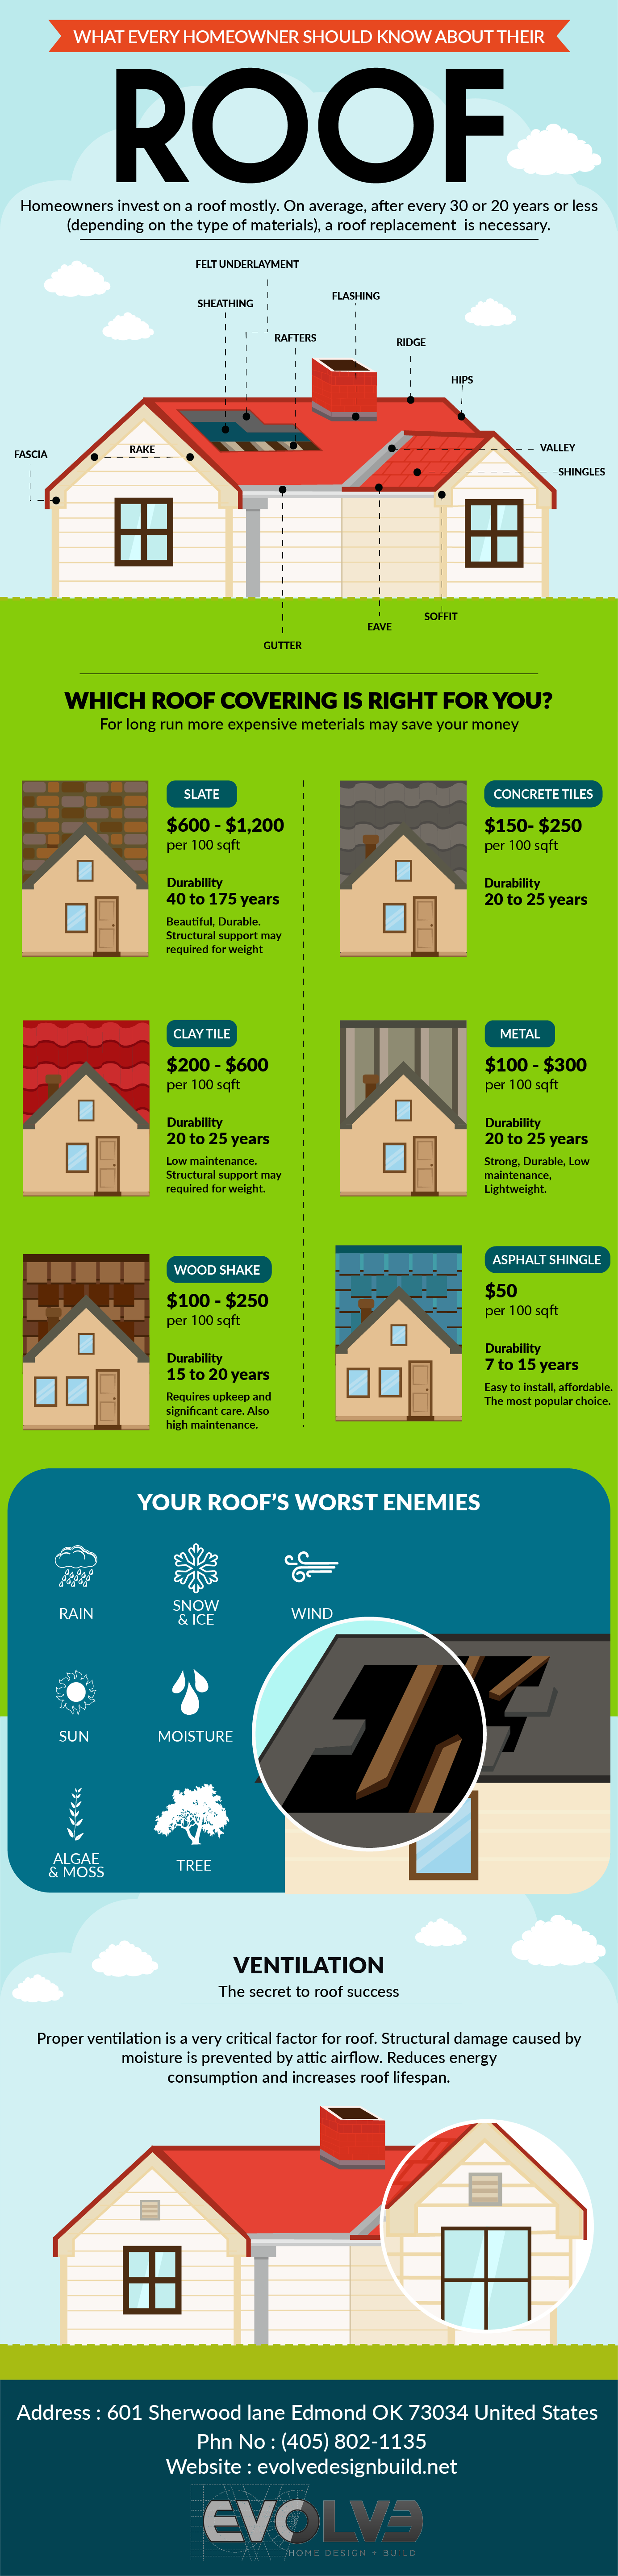 What Every Home Owner Should Know About Their Roof